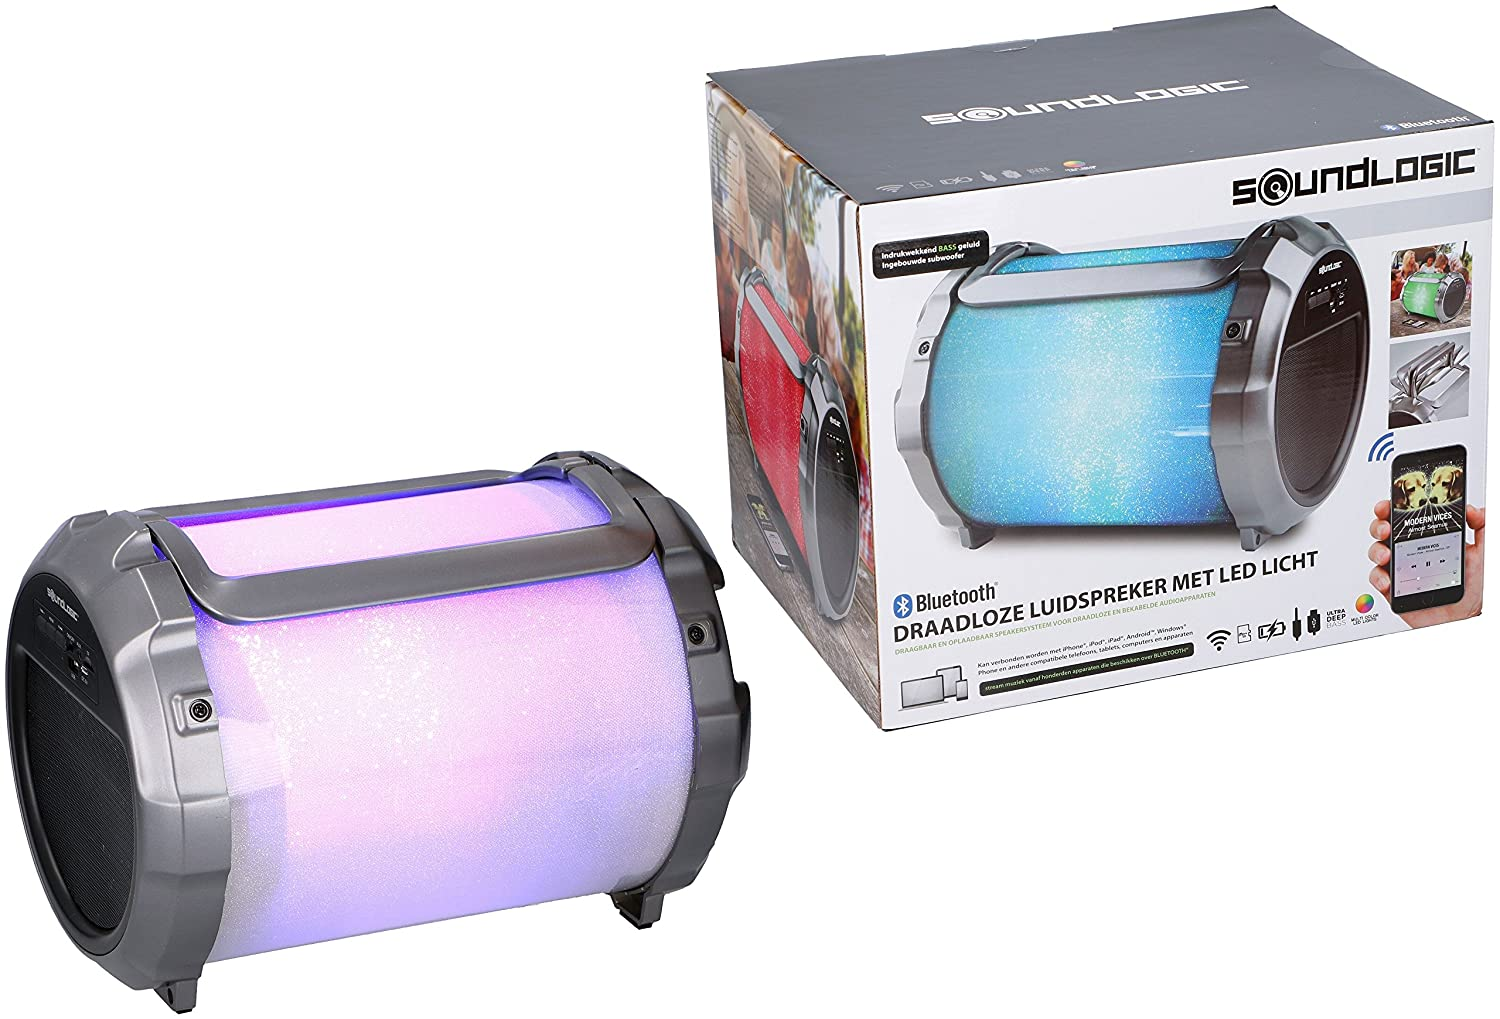 Speaker Met Licht : Sound logic xl portable speaker with led lights and amazon